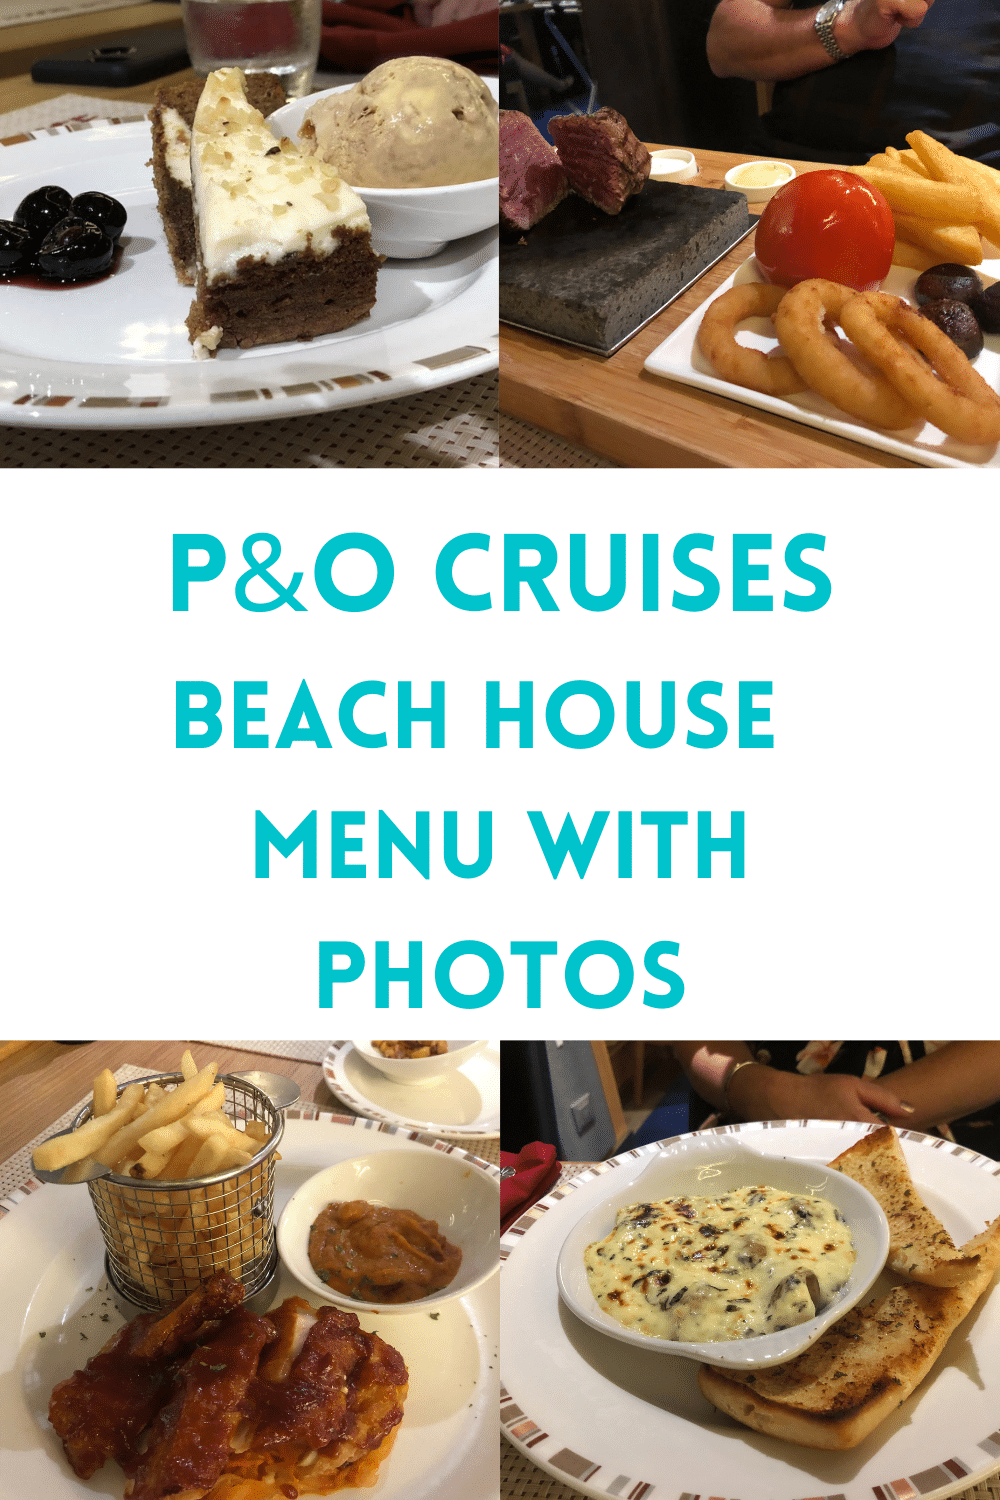 The Beach House on P&O Cruises is a casual specialty dining option that offers American and Caribbean dishes at an affordable price.